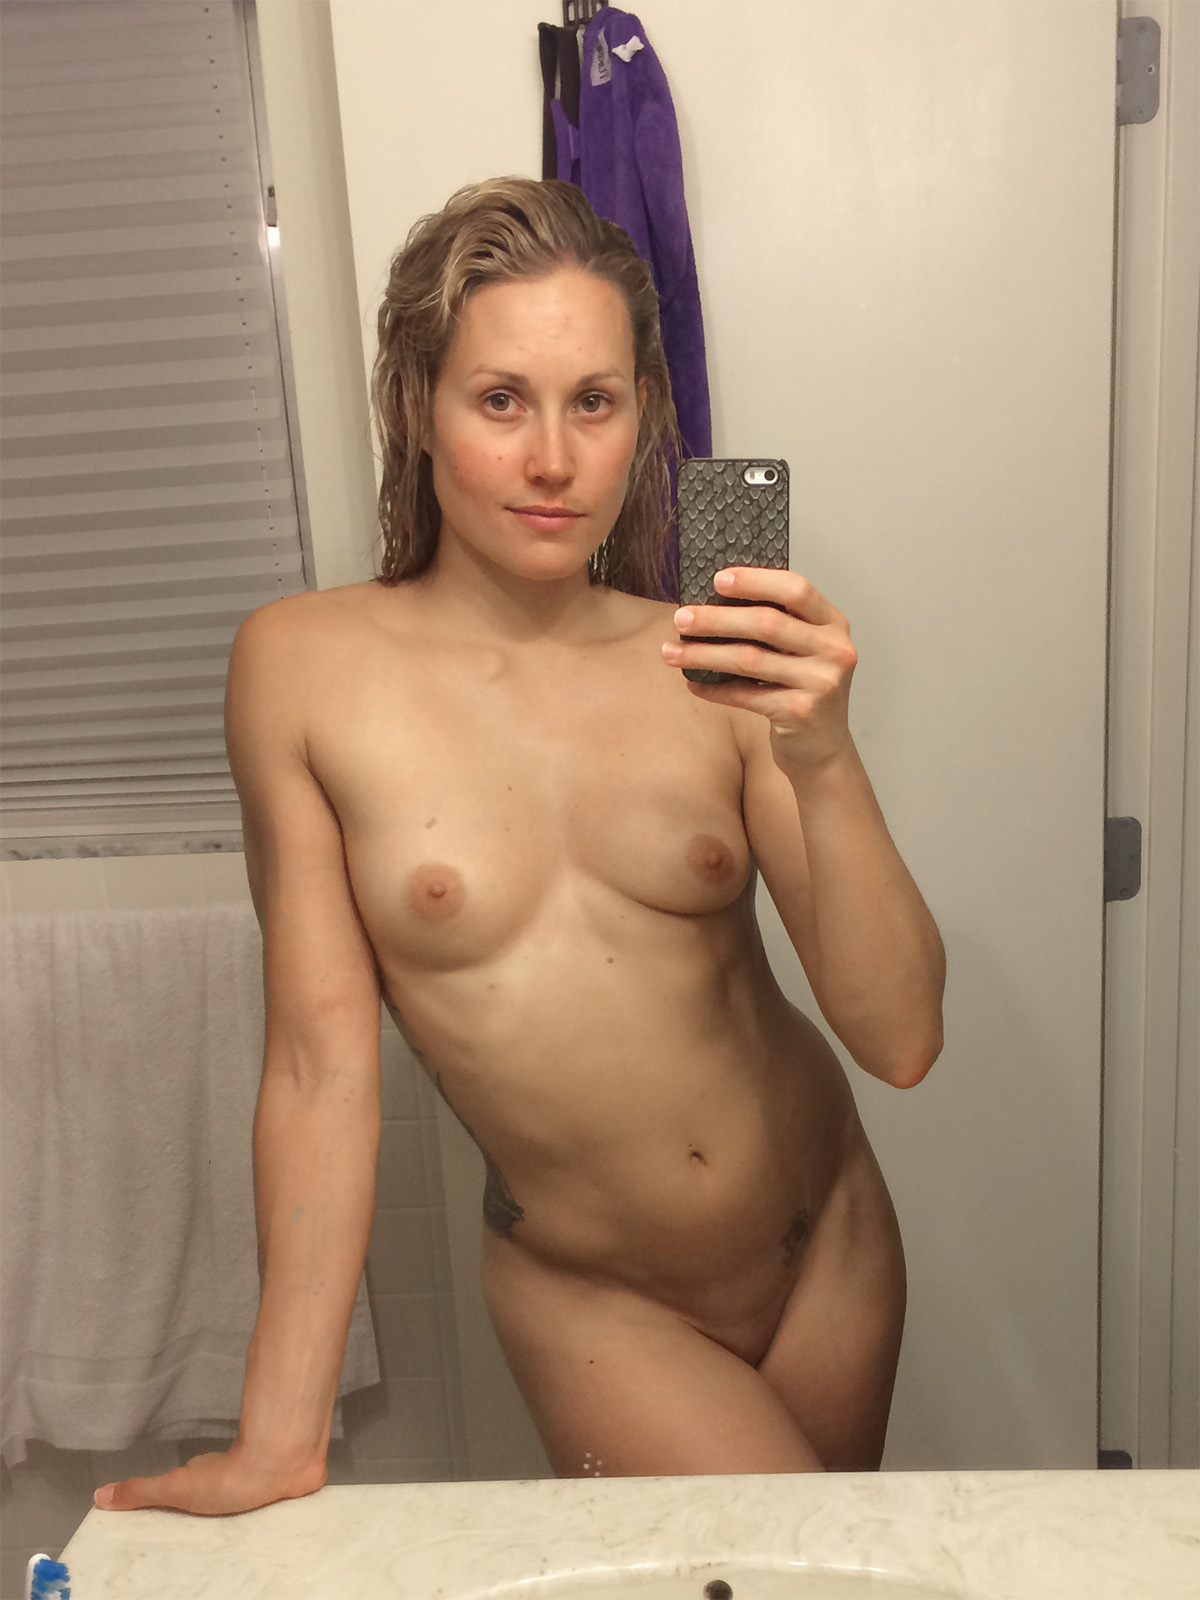 Kymberli nance nude new pictures